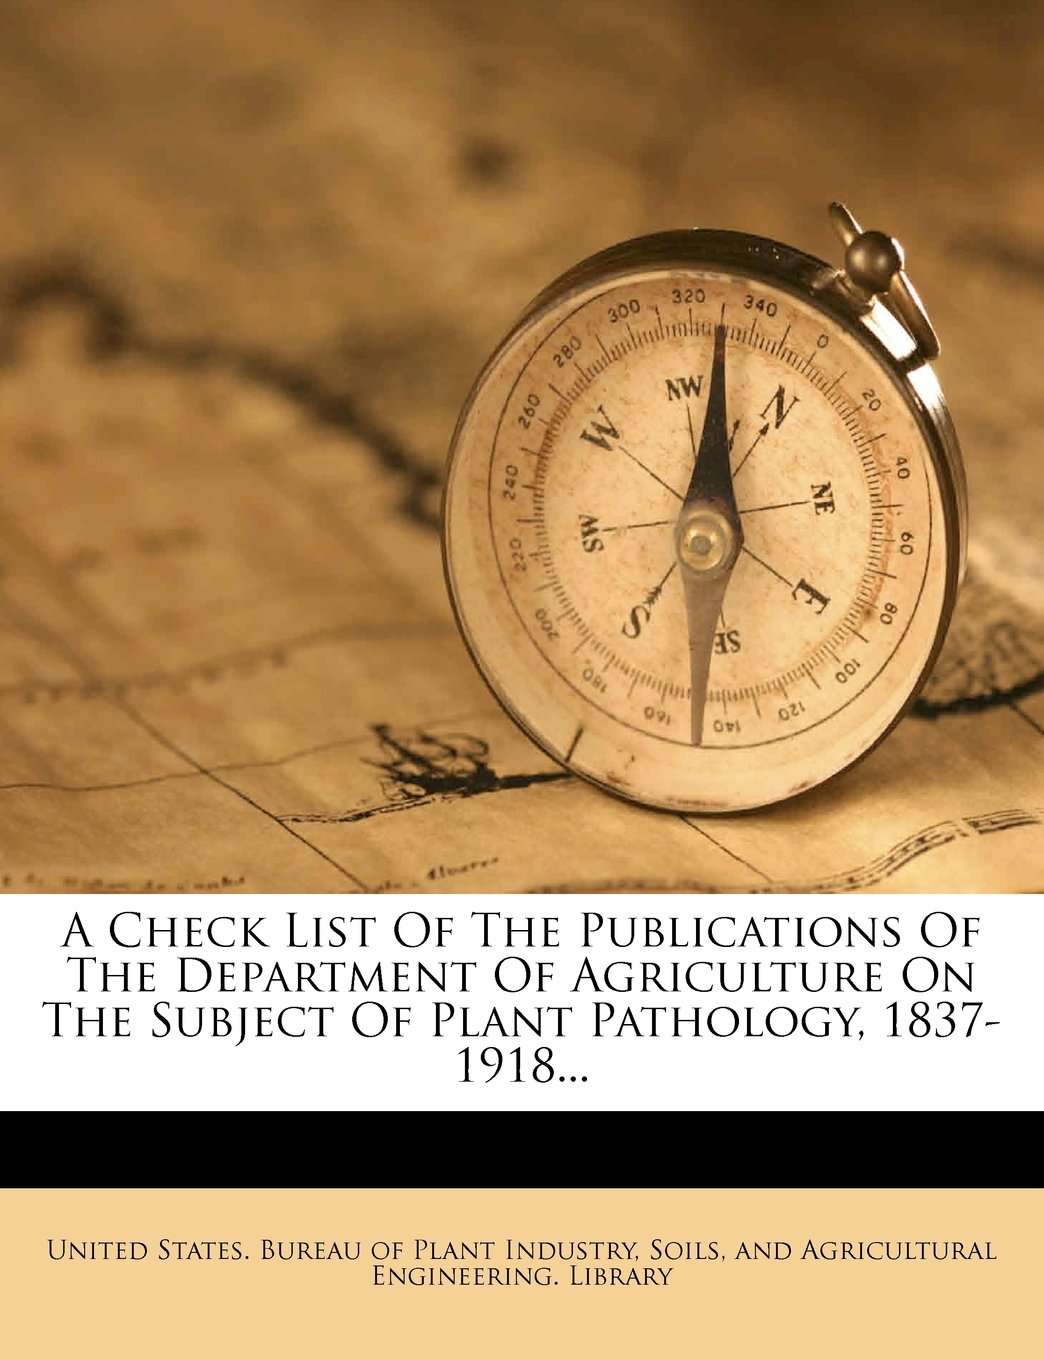 A Check List Of The Publications Of The Department Of Agriculture On The Subject Of Plant Pathology, 1837-1918... PDF